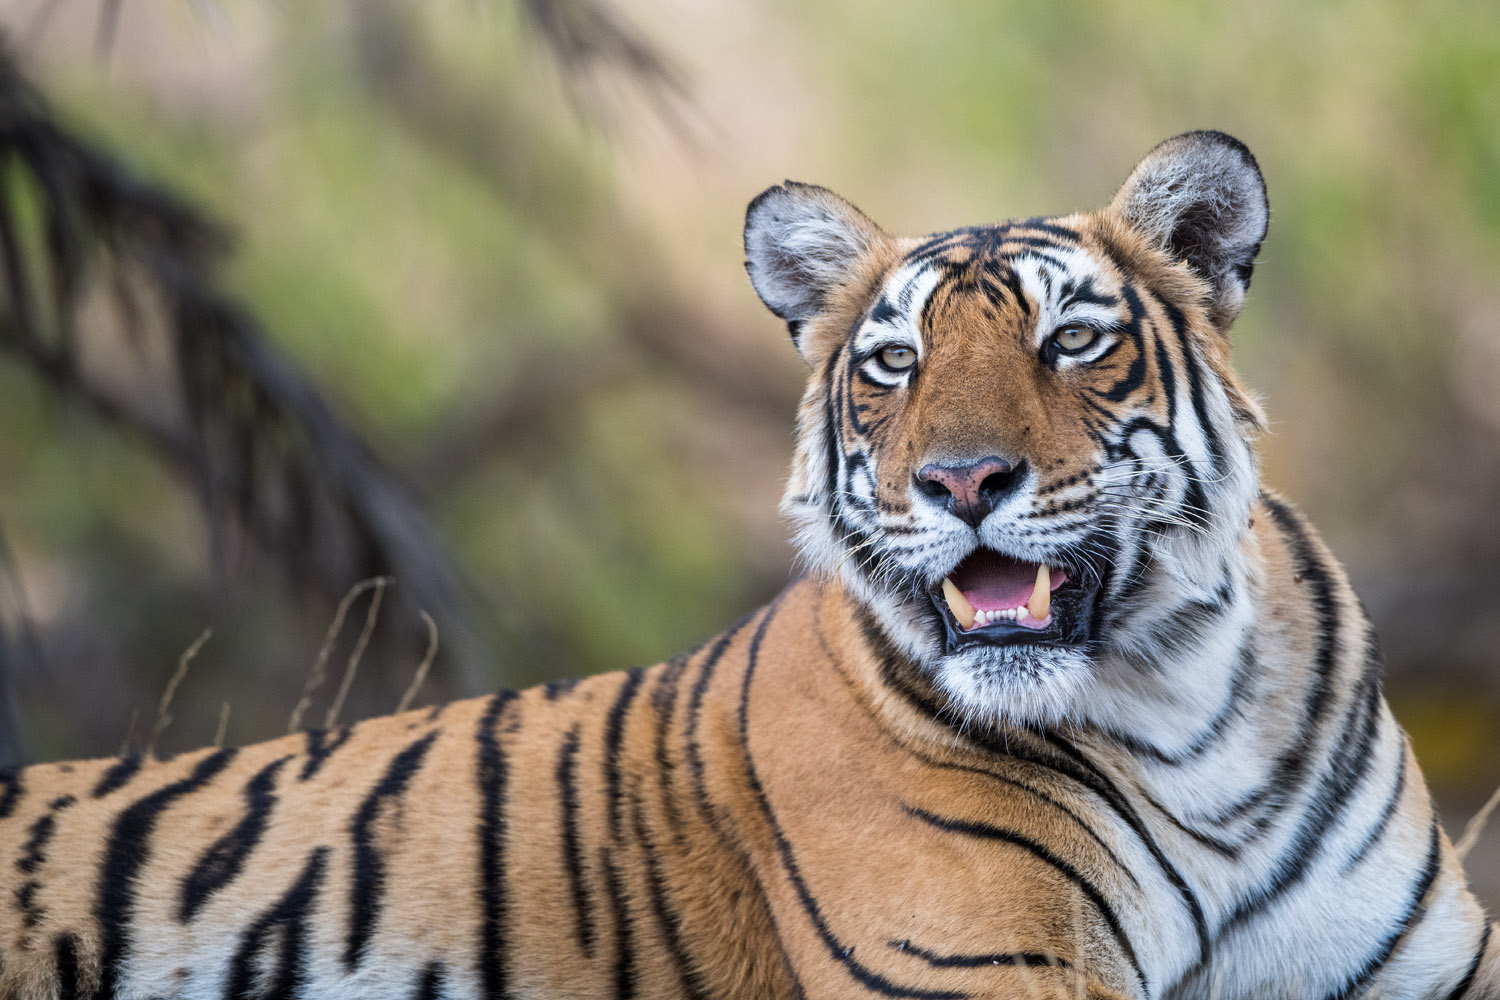 Bengal tigress portrait, Ranthambhore National Park, Rajasthan, India